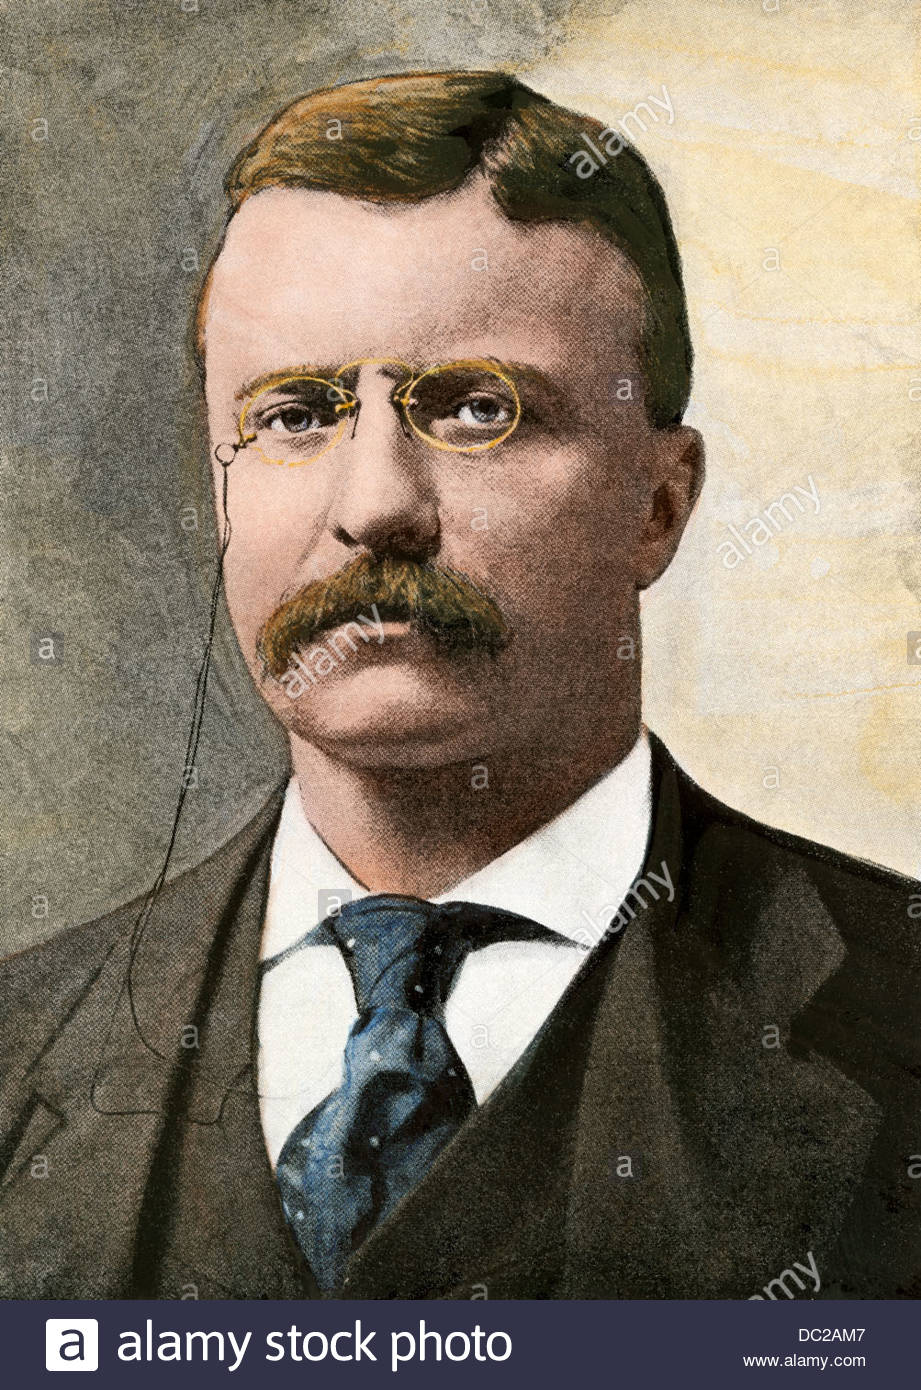 teddy stockfotos und bilder kaufen coloring us prasident theodore handcolorierte halftone coloring pages Teddy Roosevelt Coloring Page